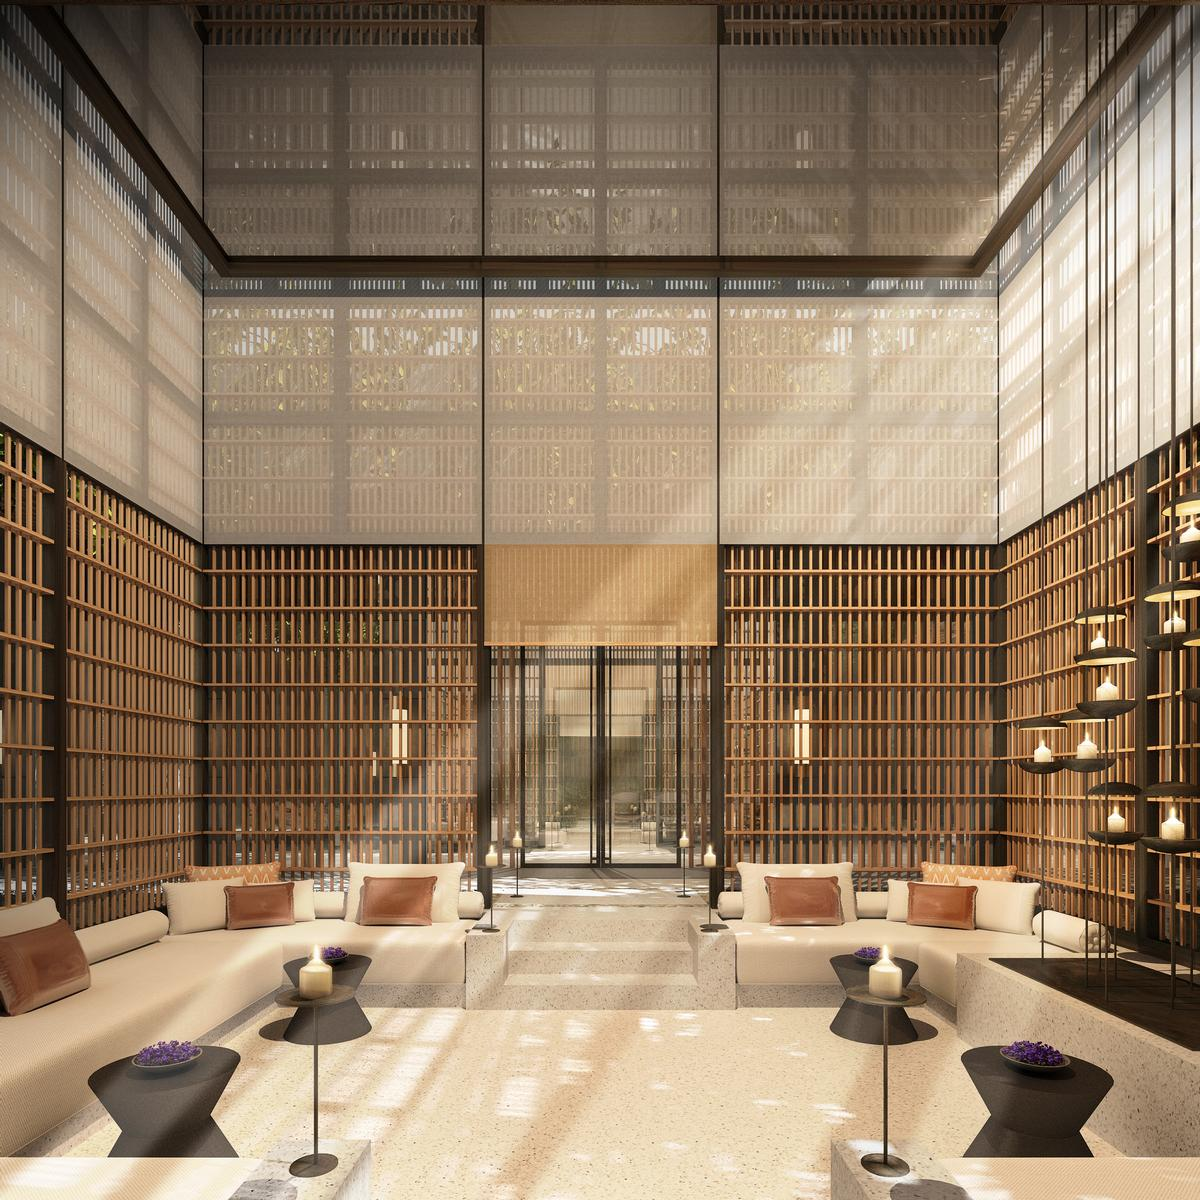 Lake sought to create a dynamic, non-conventional, 21st century spa